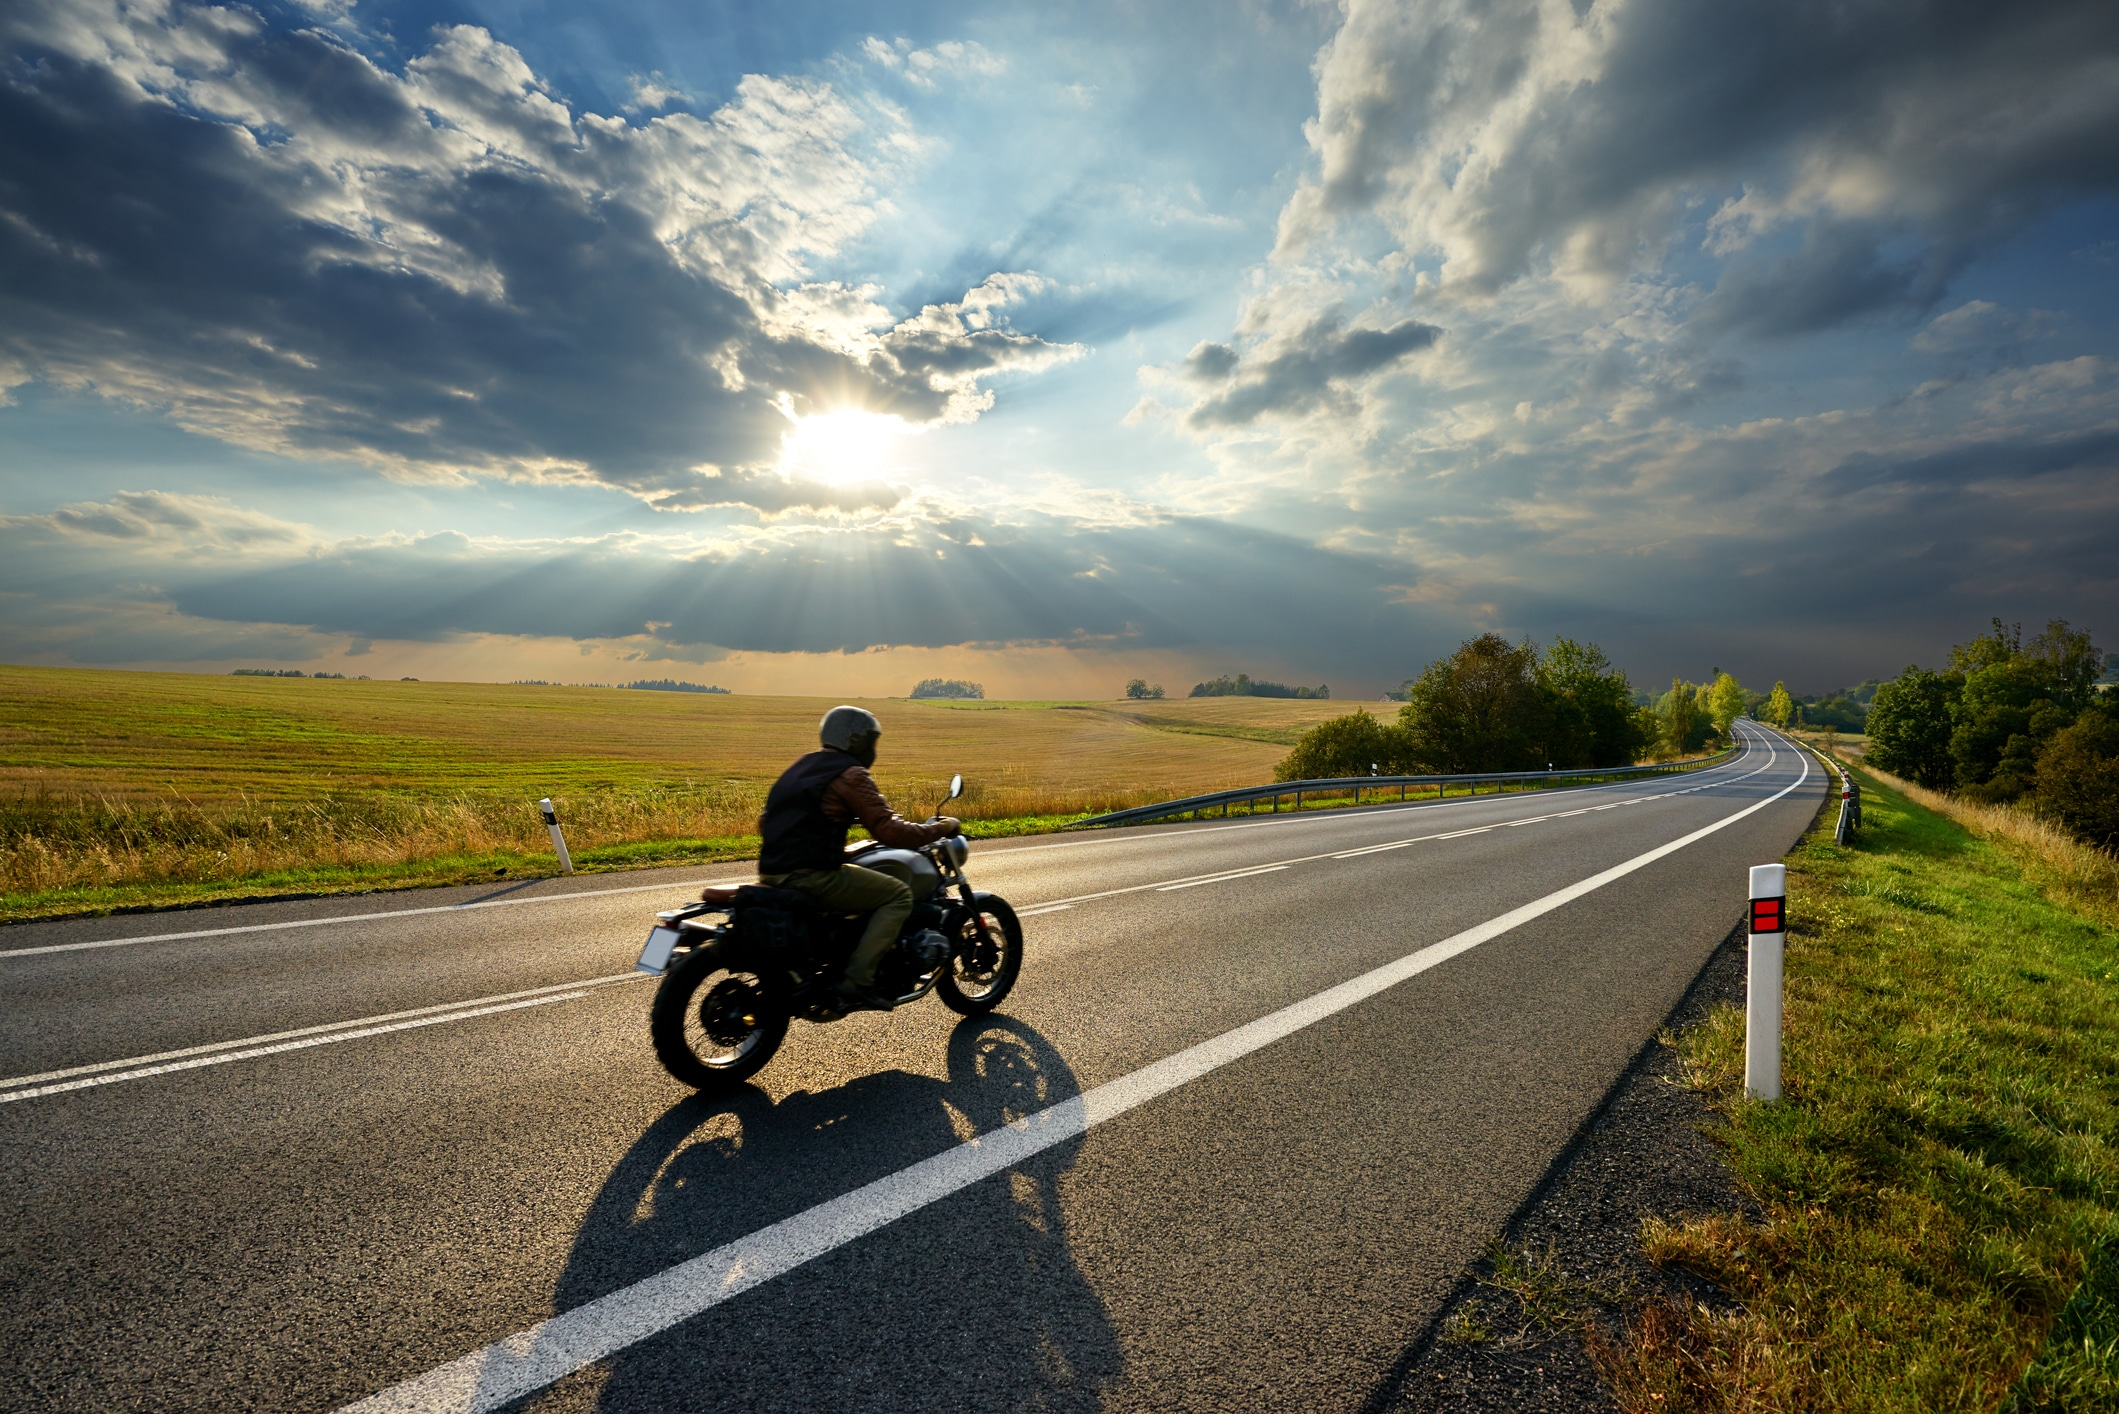 There Are Many Potential Causes of Motorcycle Accidents in the United States